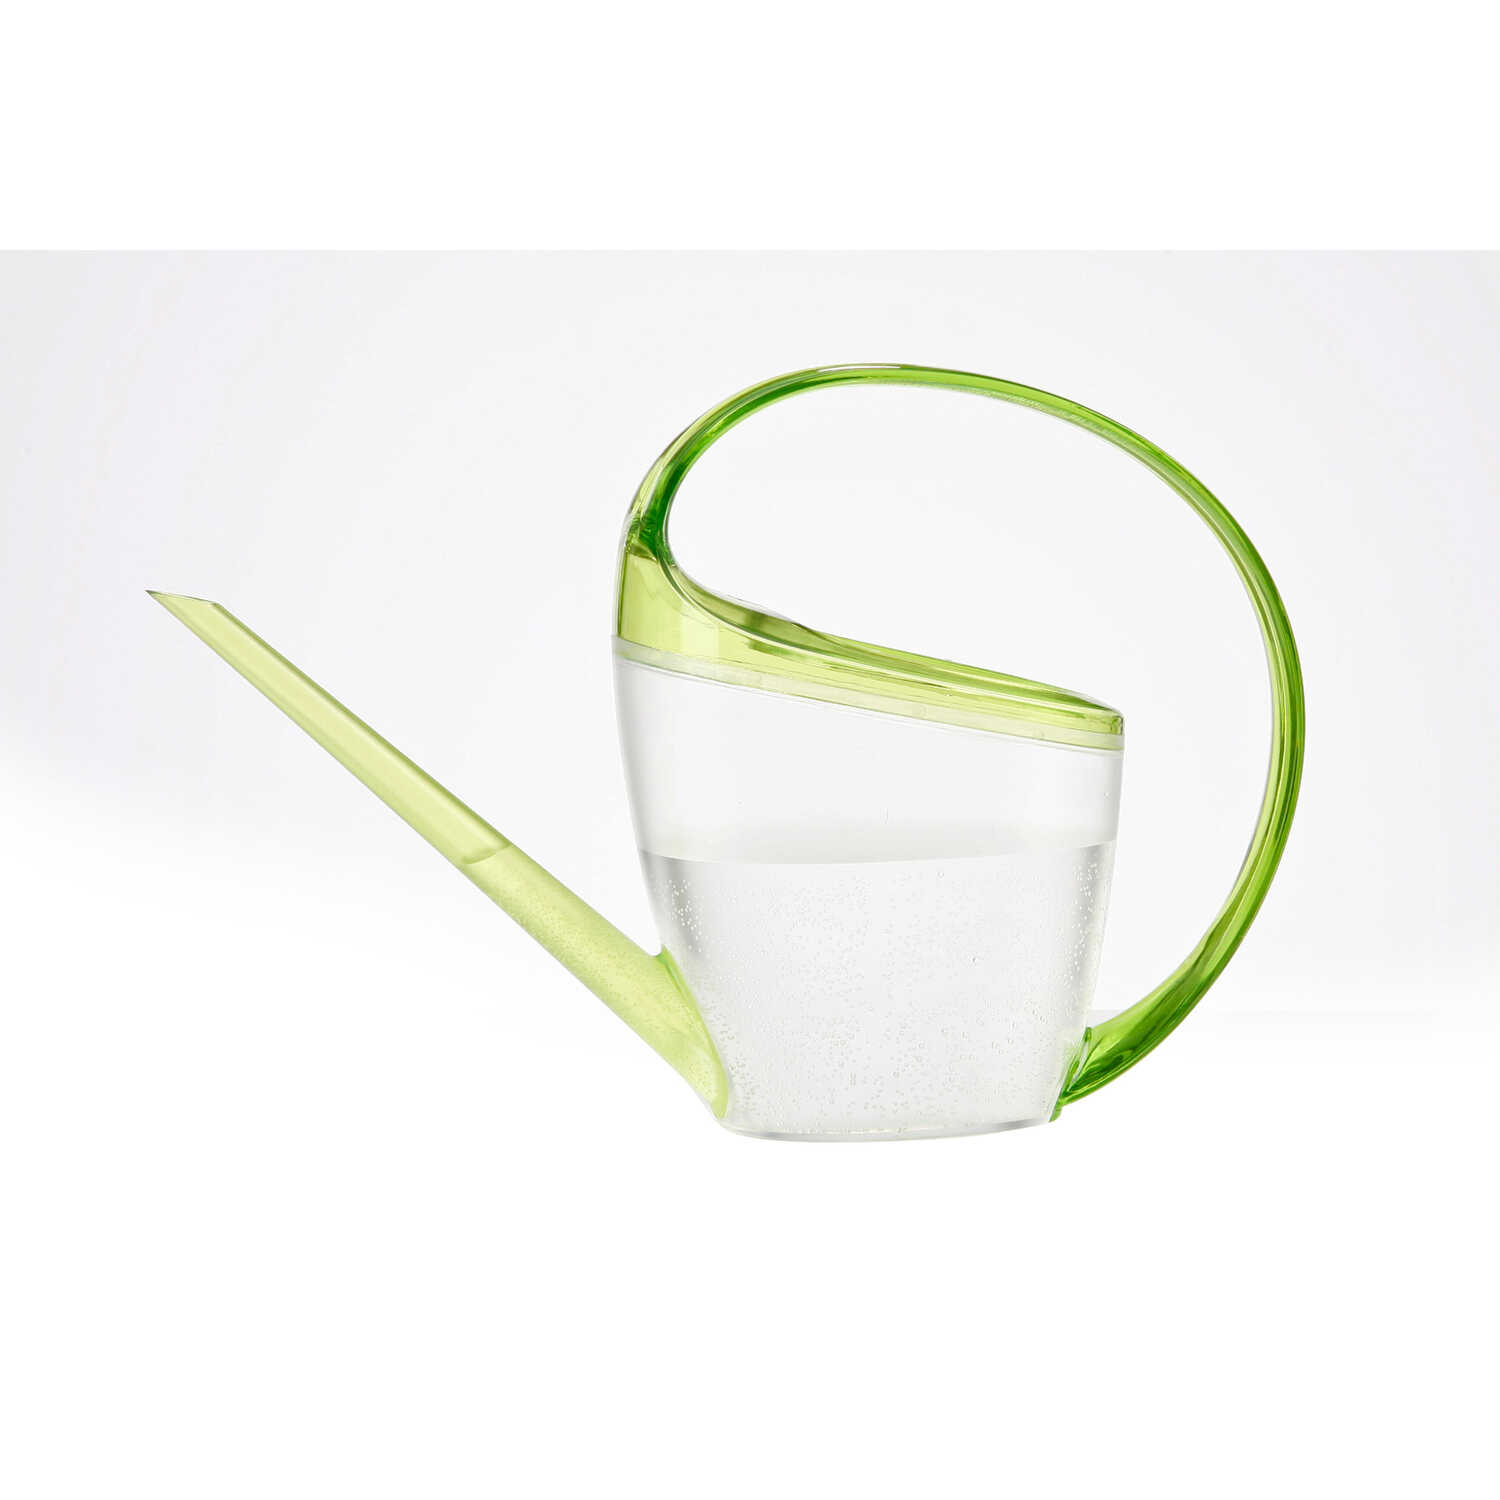 Scheurich  Loop  Green  0.4 gal. Plastic  Watering Can